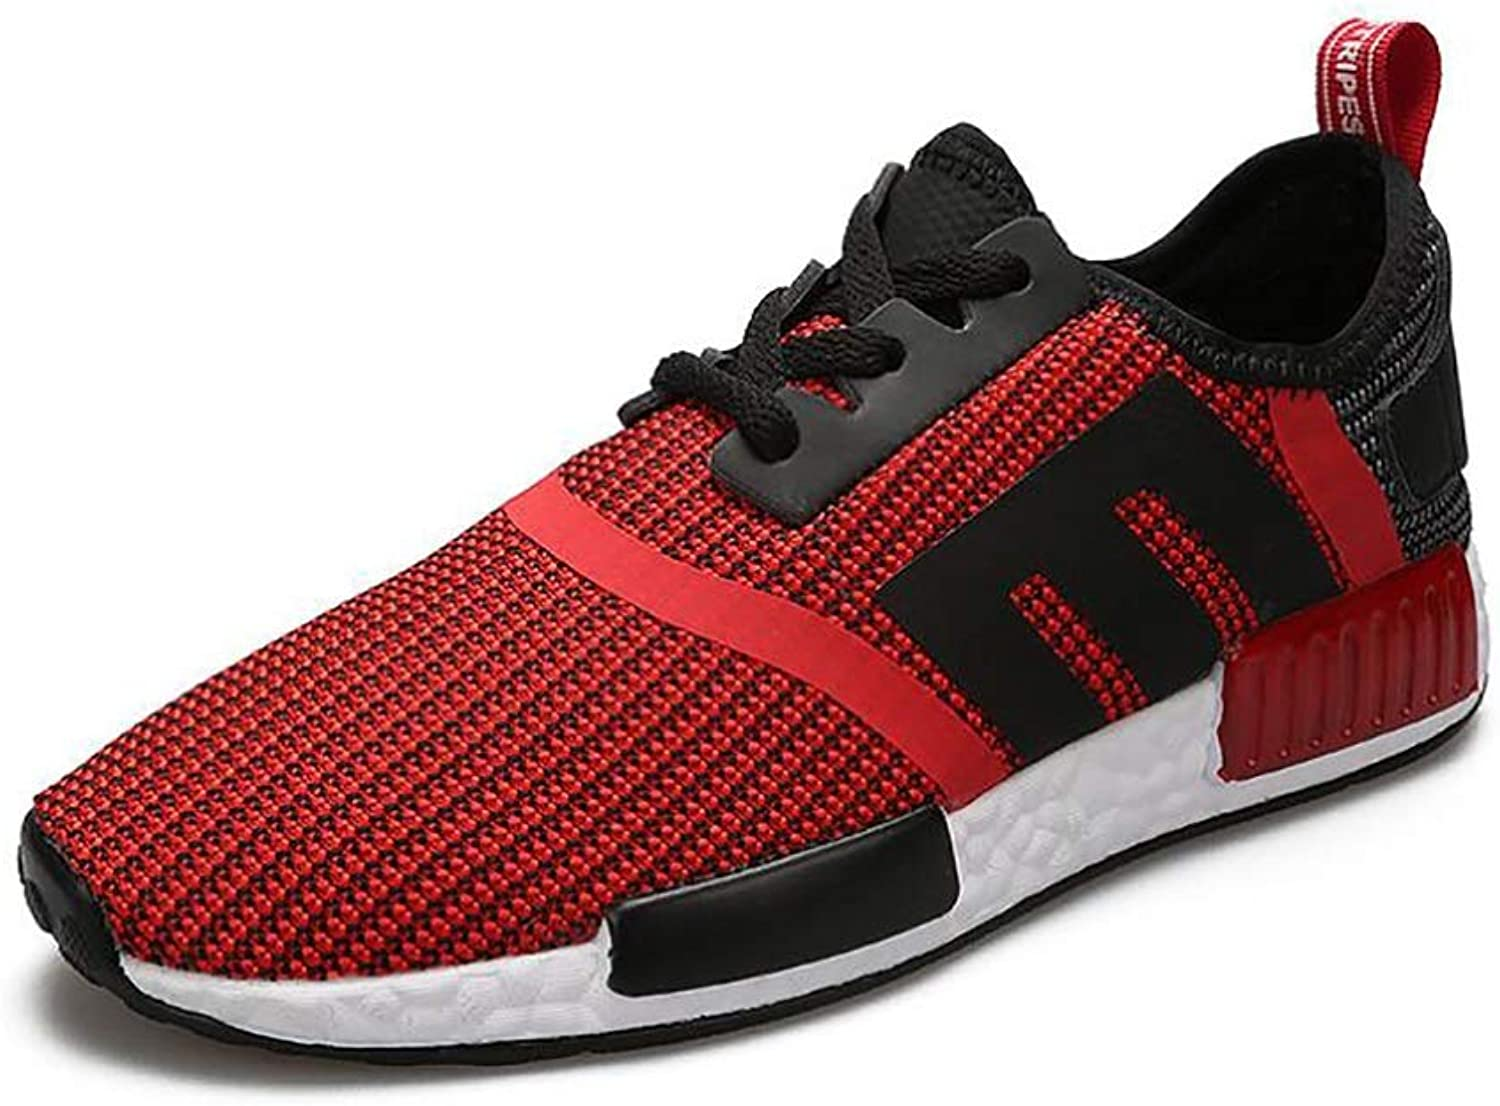 d03ab1d99 2018 New Men's Sports shoes shoes shoes Spring Fall Mesh Casual shoes Men  Breathable Lightweight Running shoes Red, Black, Green (color C, Size 39)  c4c055